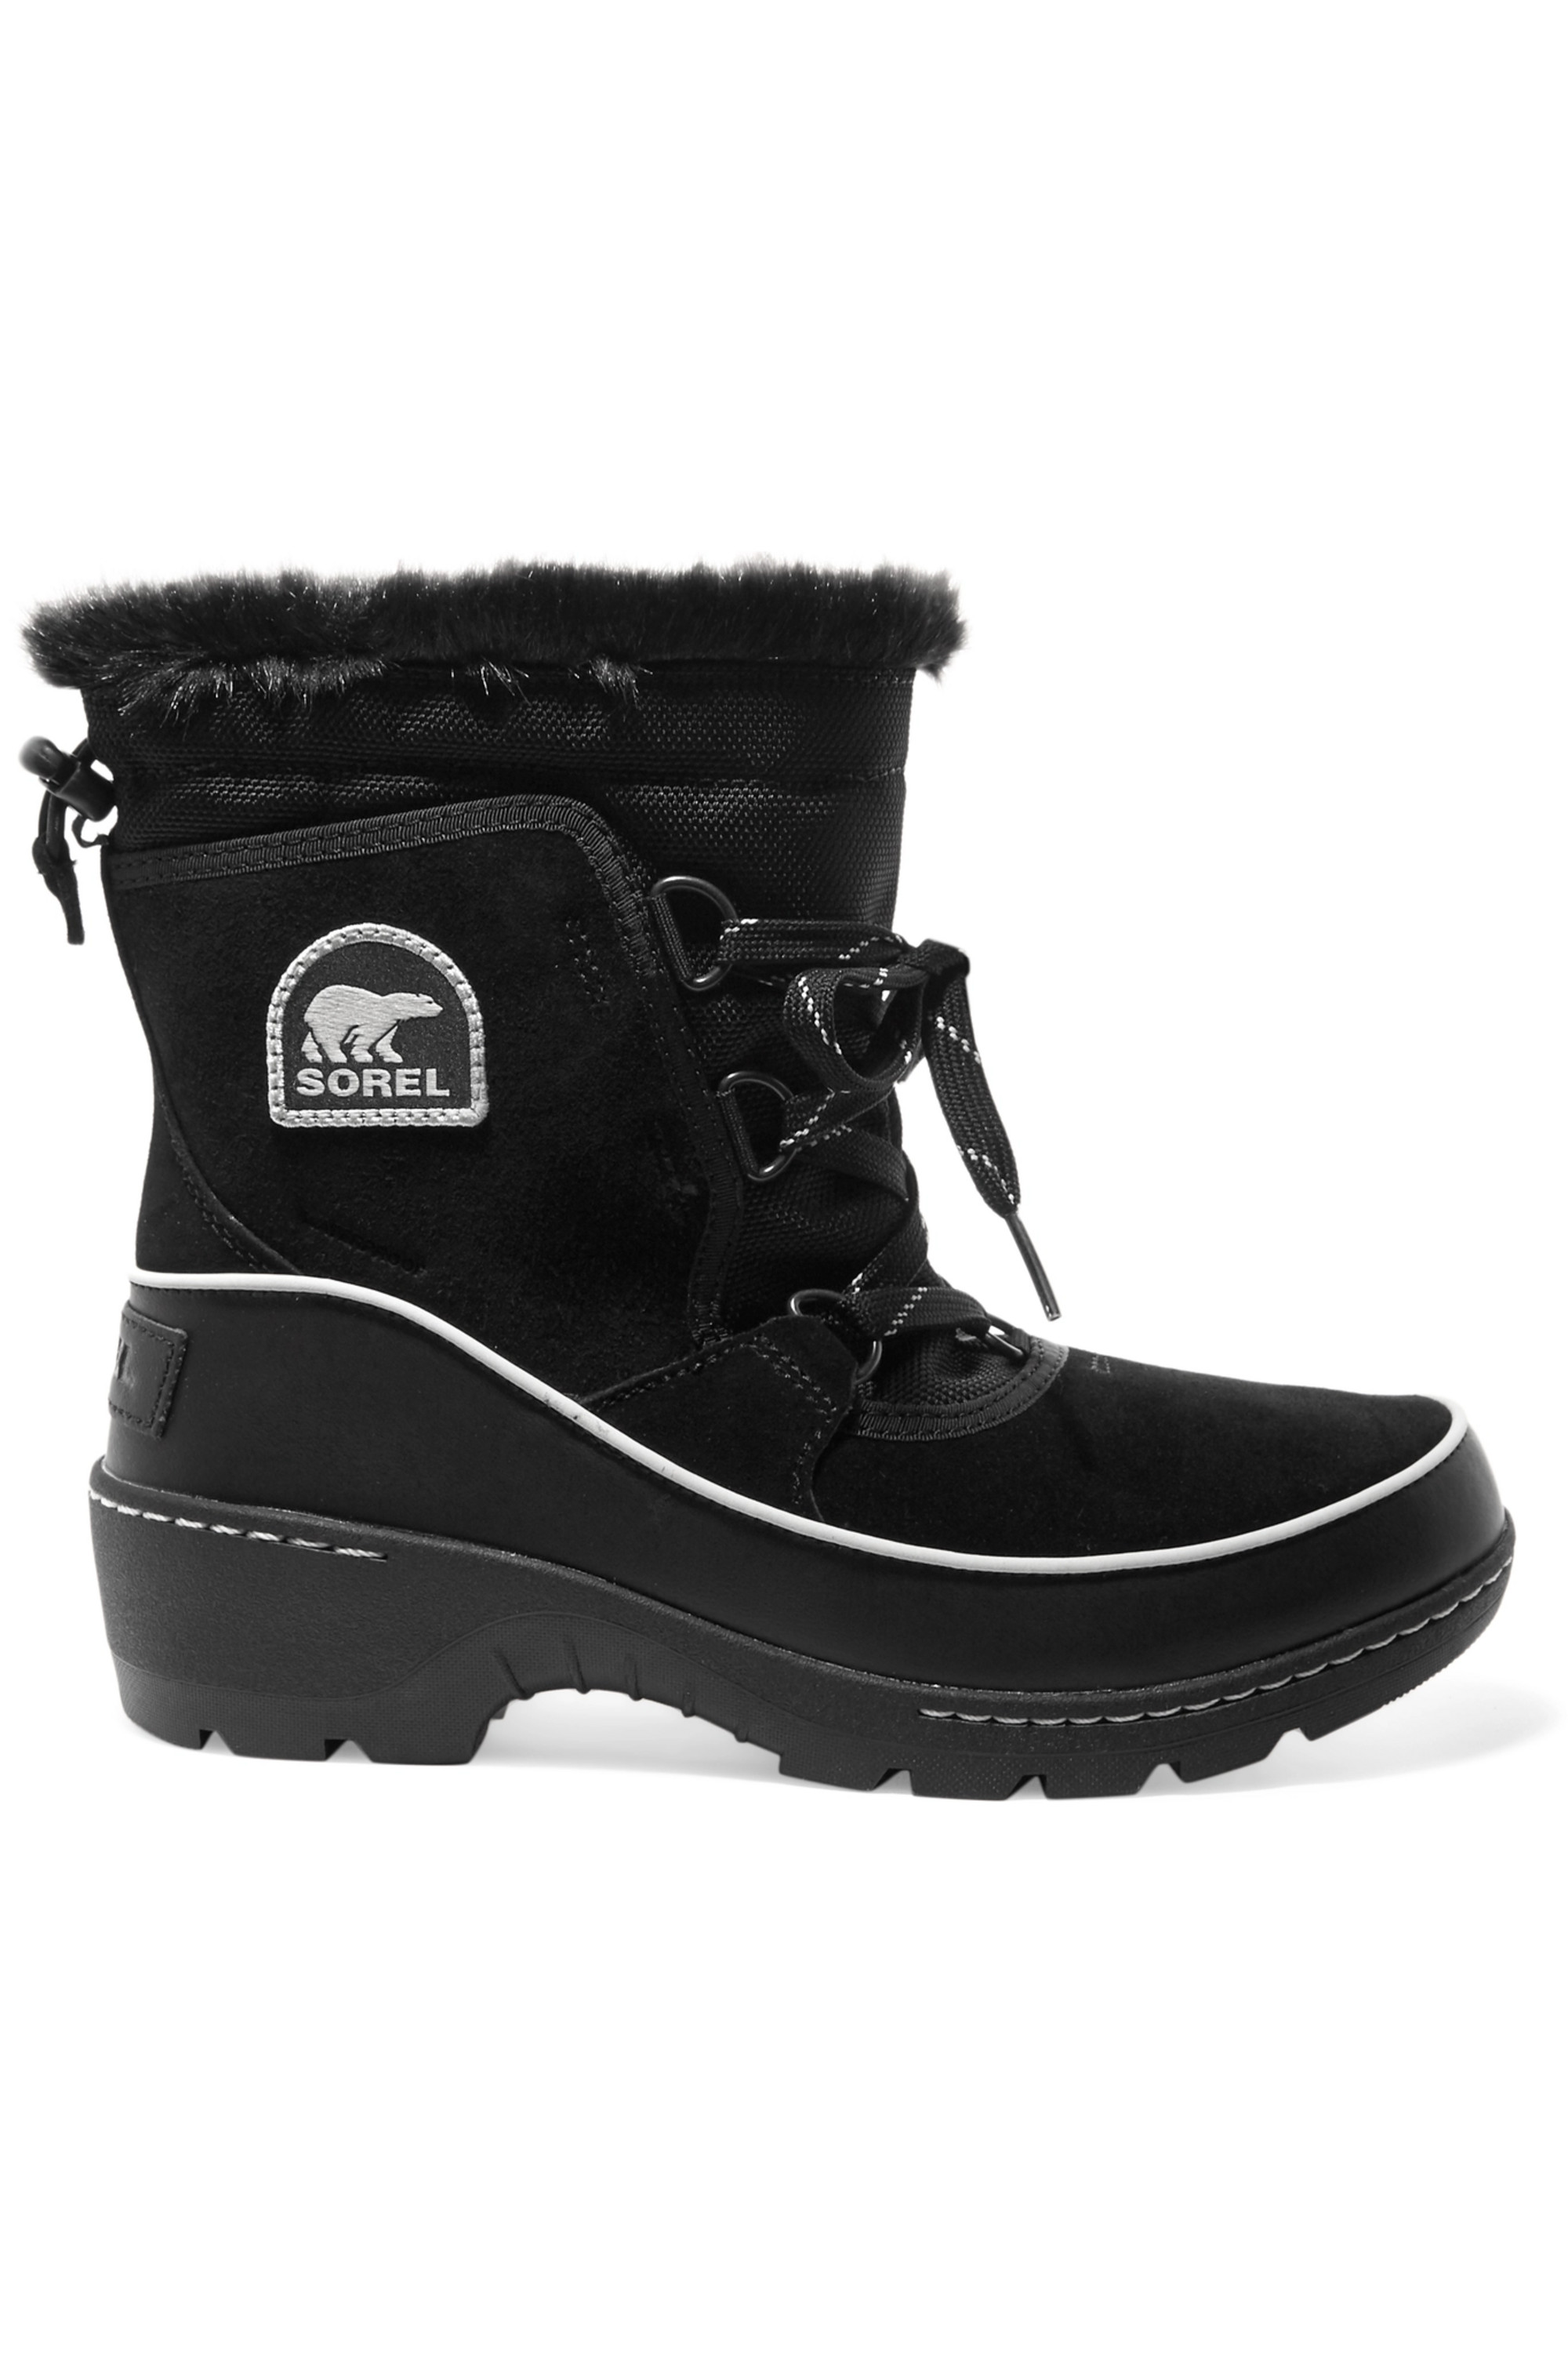 SOREL Torino faux fur-trimmed waterproof suede, shell and leather ankle boots